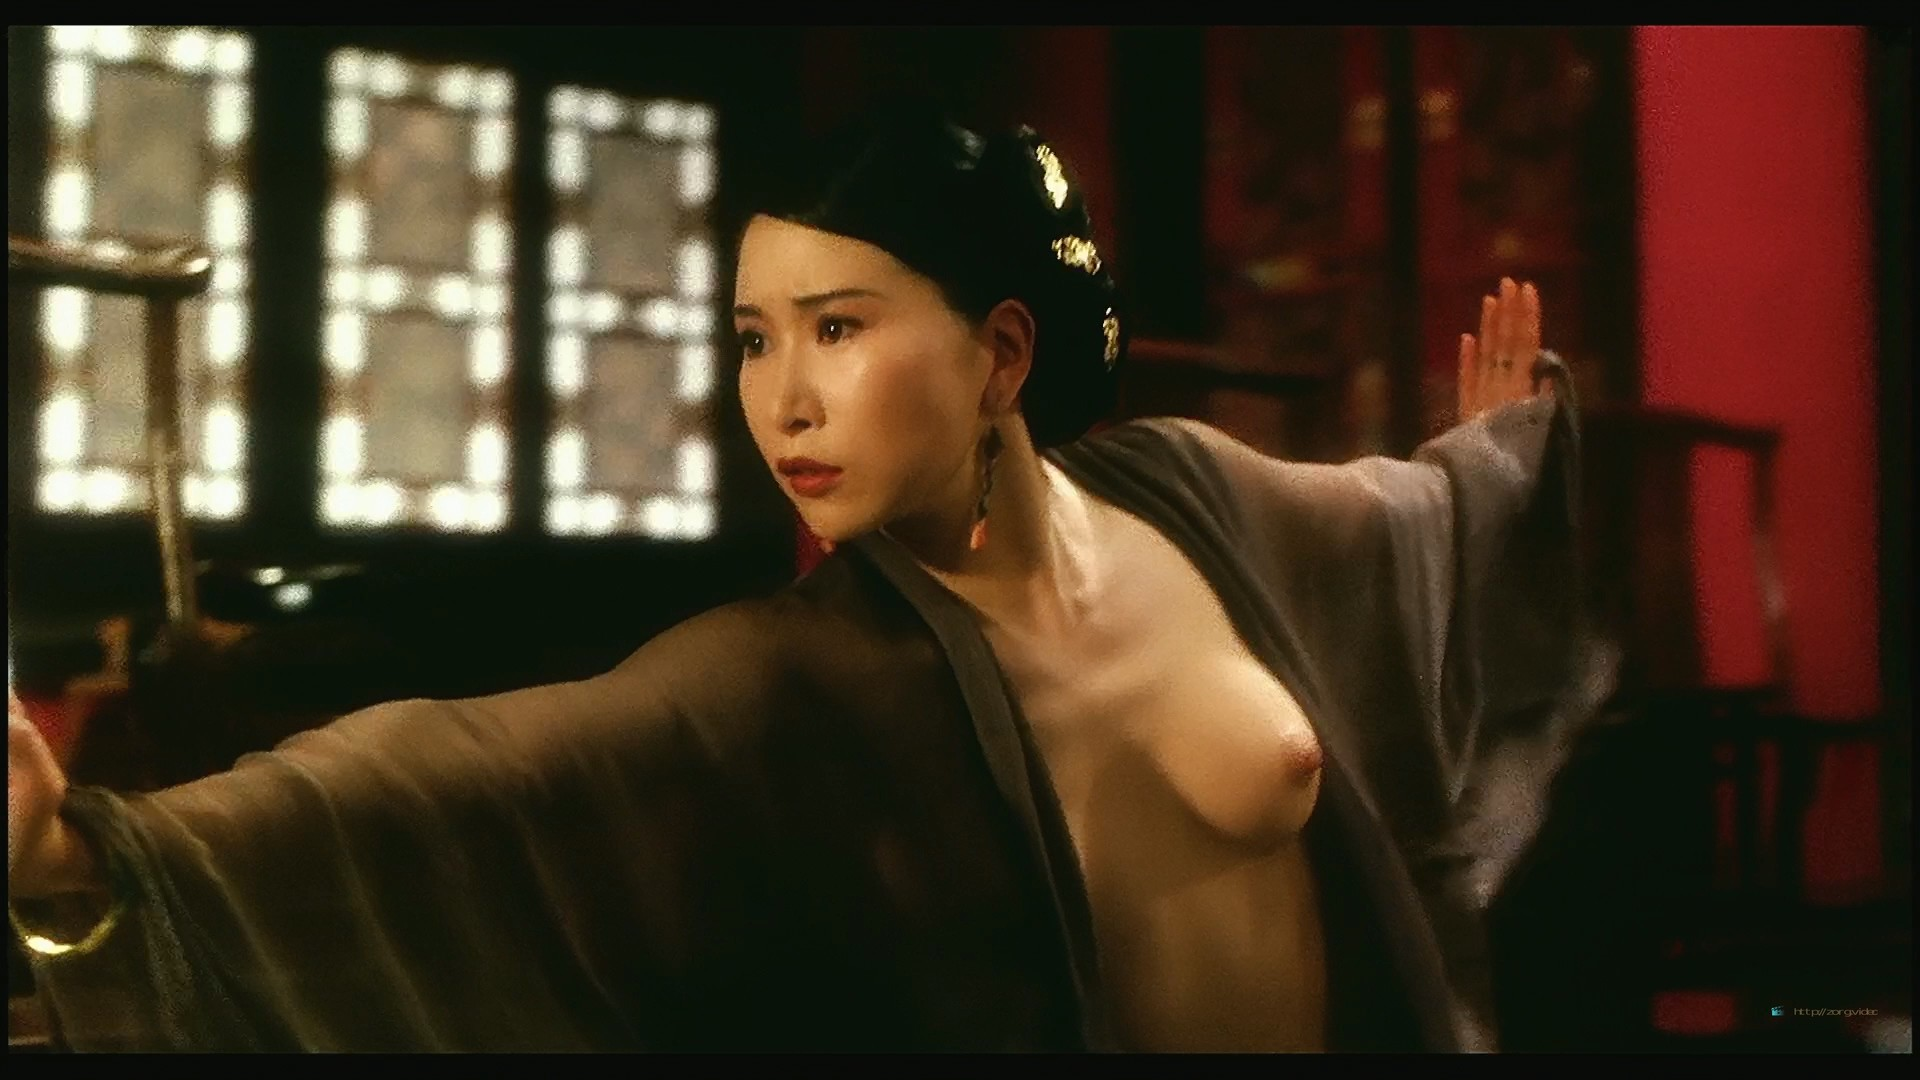 Yvonne Yung Hung nude and a lot of sex Julie Lee and others nude too - Sex and the Emperor (HK-1994) HD 1080p BluRay (9)